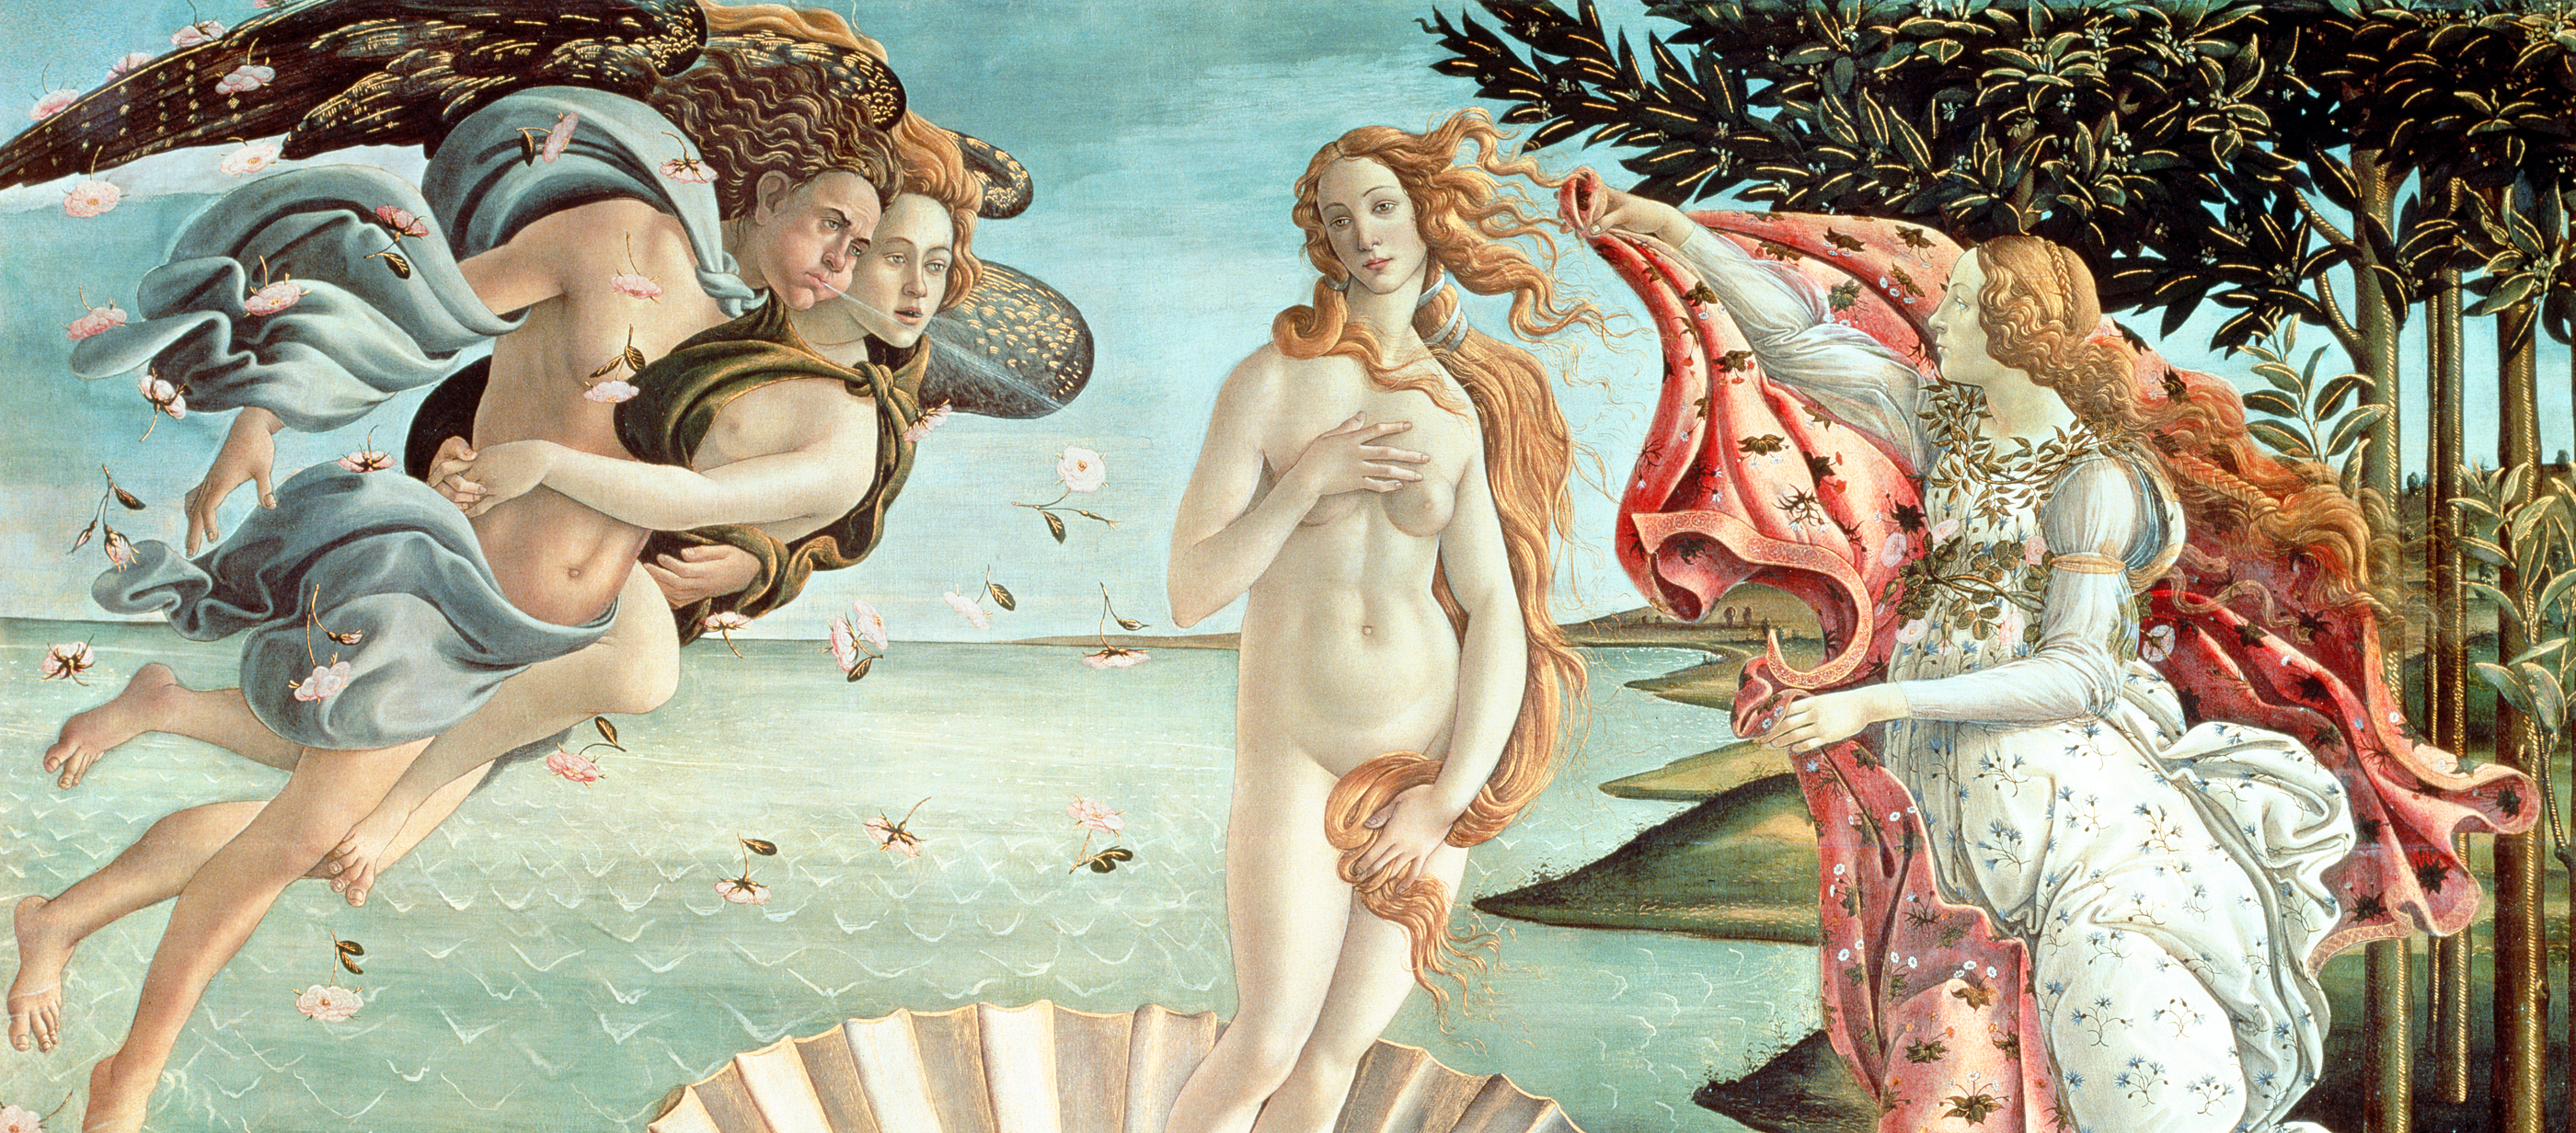 The Birth of Venus, by Sandro Botticelli, c. 1485. Uffizi Gallery, Florence.